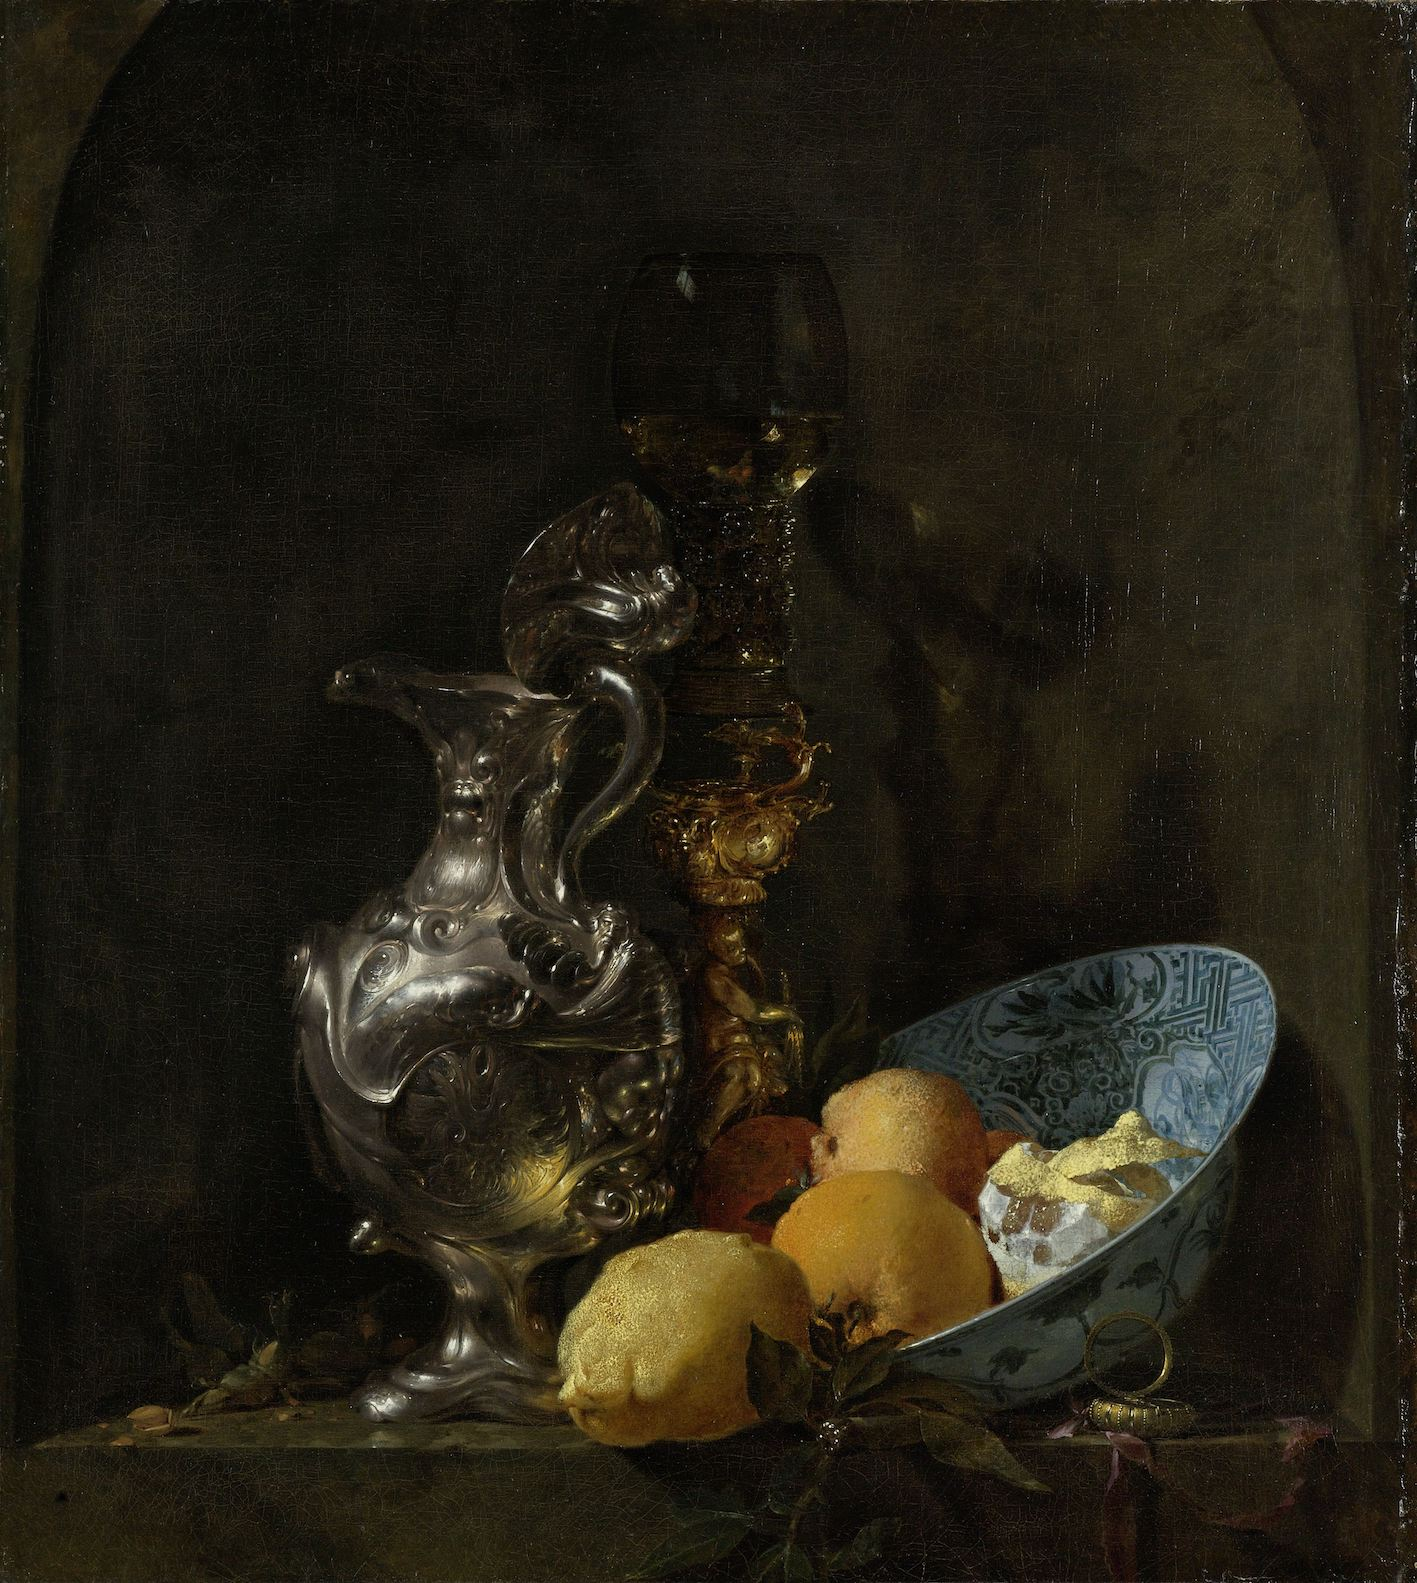 Still Life with a Silver Jug and a Porcelain Bowl (1655-1660) by Willem Kalf